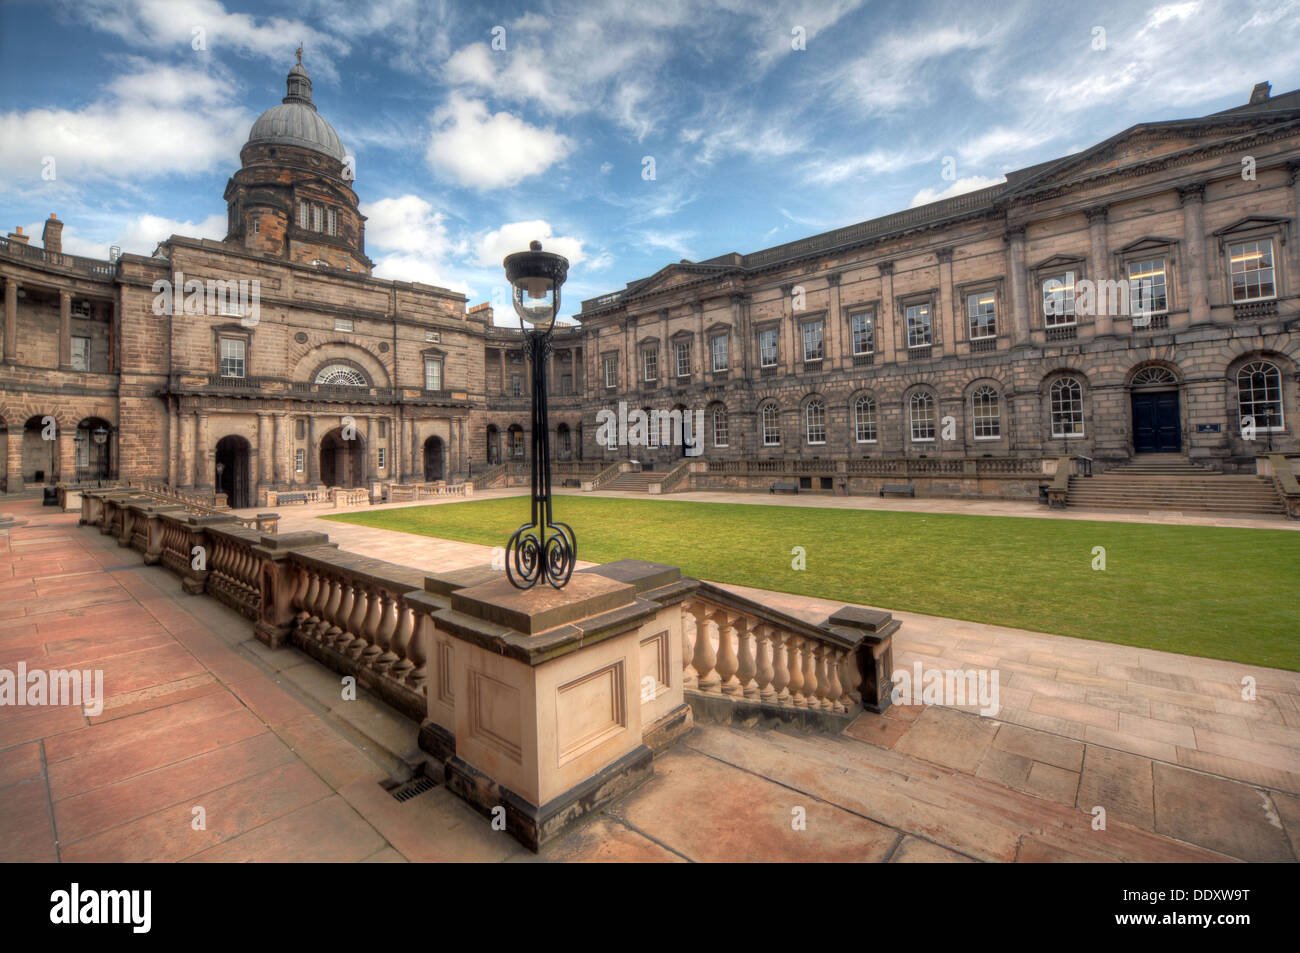 Scotland,UK,Scottish,uni,school,of,learning,building,architecture,Victorian,old,town,capital,city,cities,world,heritage,site,grade,II,grade2,listed,public,research,summer,2013,grass,Old,College,South,Bridge,Edinburgh,Midlothian,EH8,9YL,EH89YL,wide,view,shot,lens,tourist,tourism,attraction,gotonysmith,oldtown,Edinburg,icon,iconic,Scots,Scotish,Scottish,Scotland,problem,with,Uni,stone,history,historic,tourist,tourism,tour,travel,study,student,Buy Pictures of,Buy Images Of,problem with,Edinburgh University,Edinburgh Uni